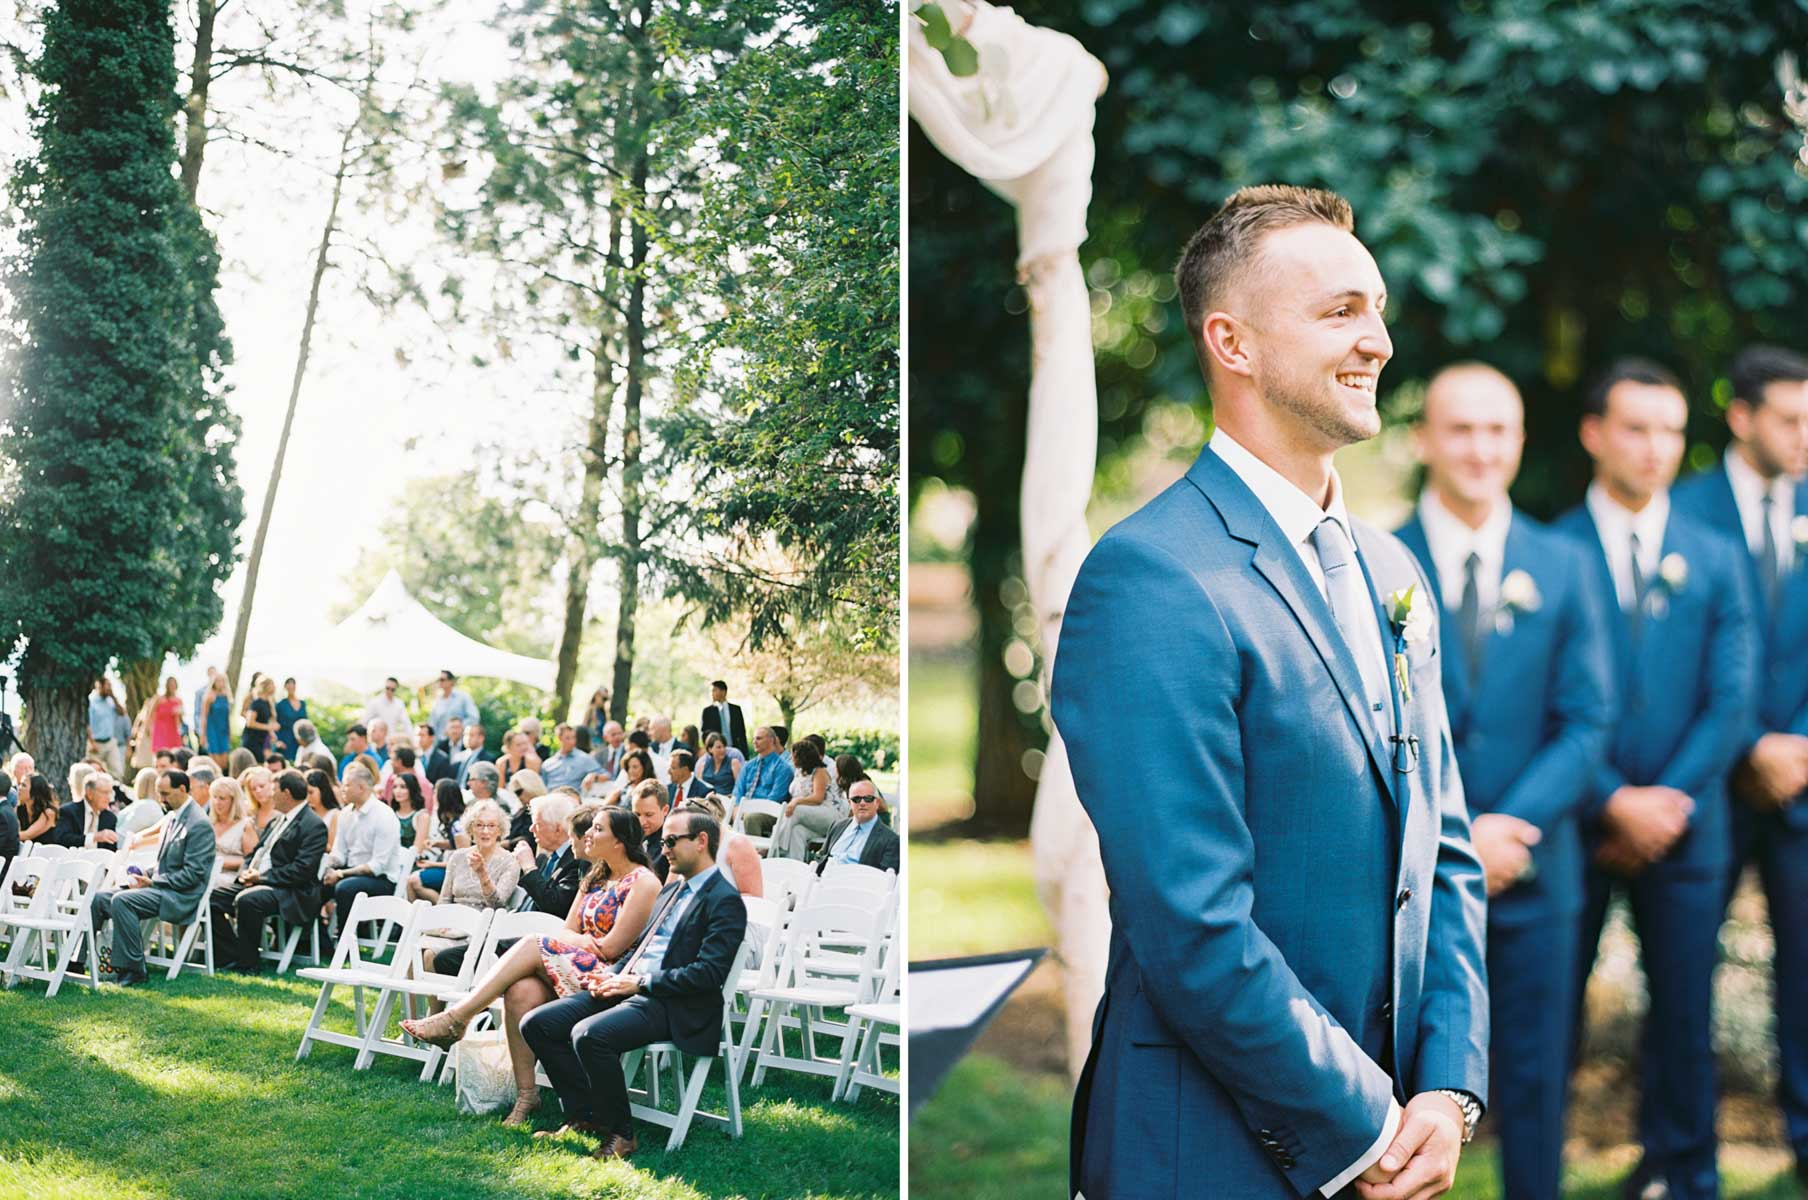 Wedding ceremony at Arbor Crest Winery by Spokane Wedding Photographer Anna Peters